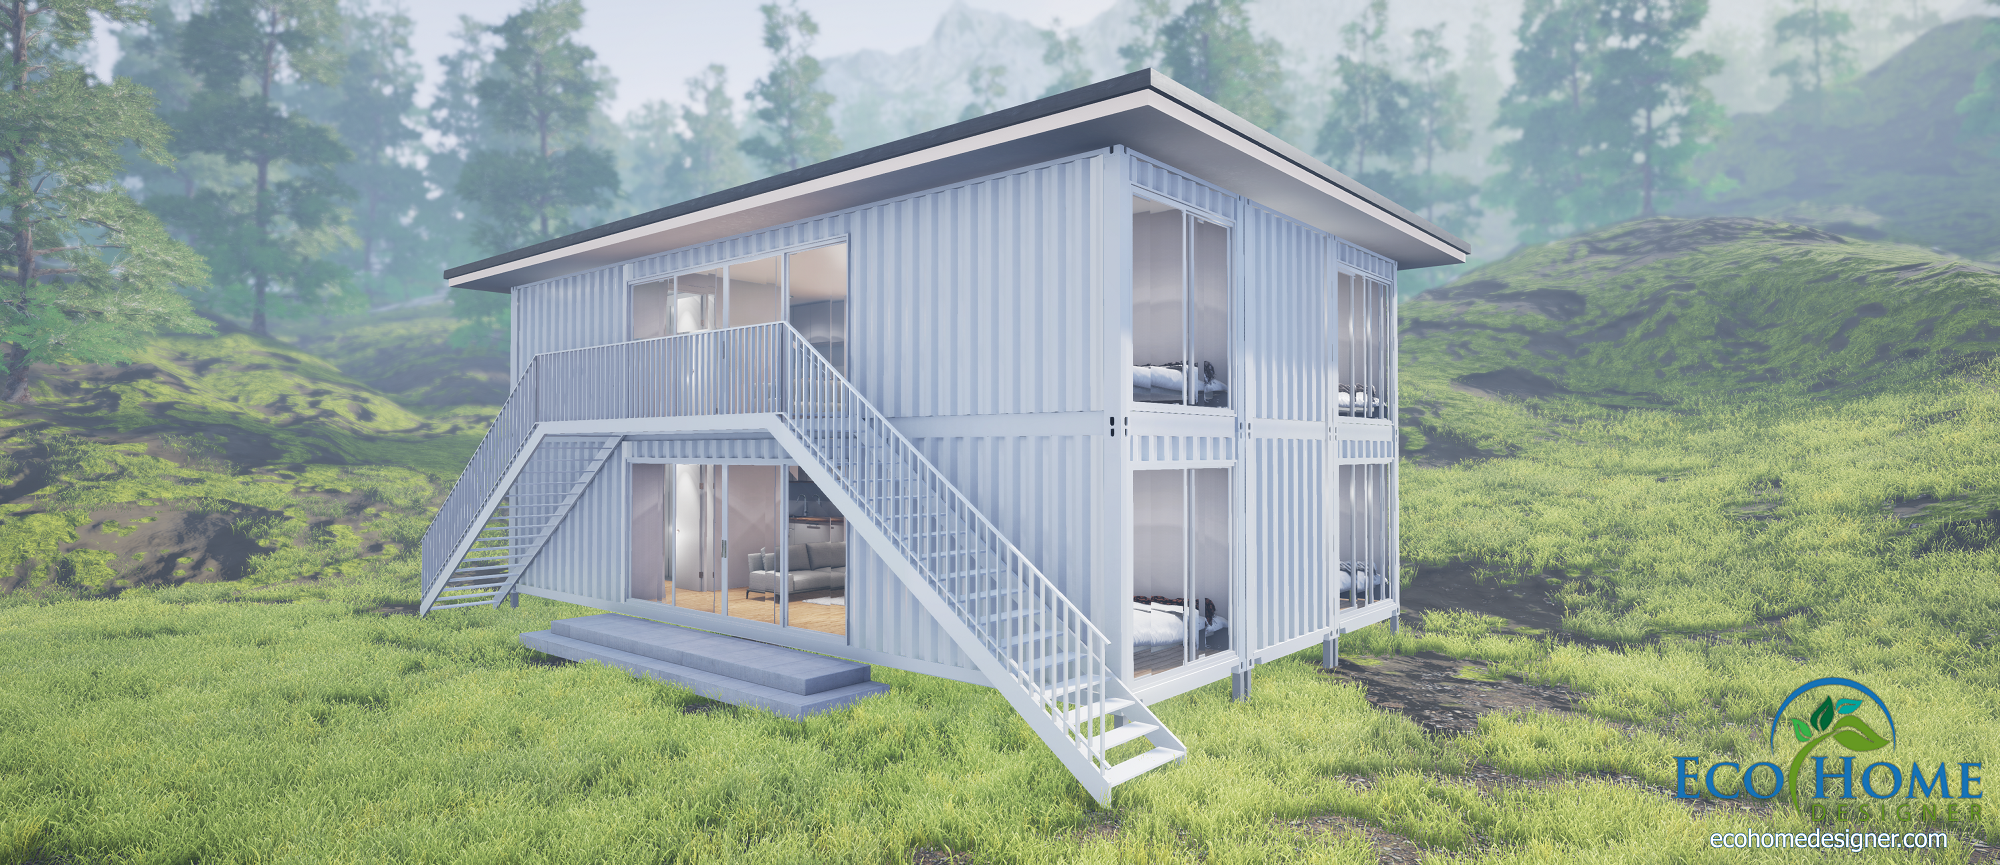 sch6 6 x 40ft double storey container duplex eco home